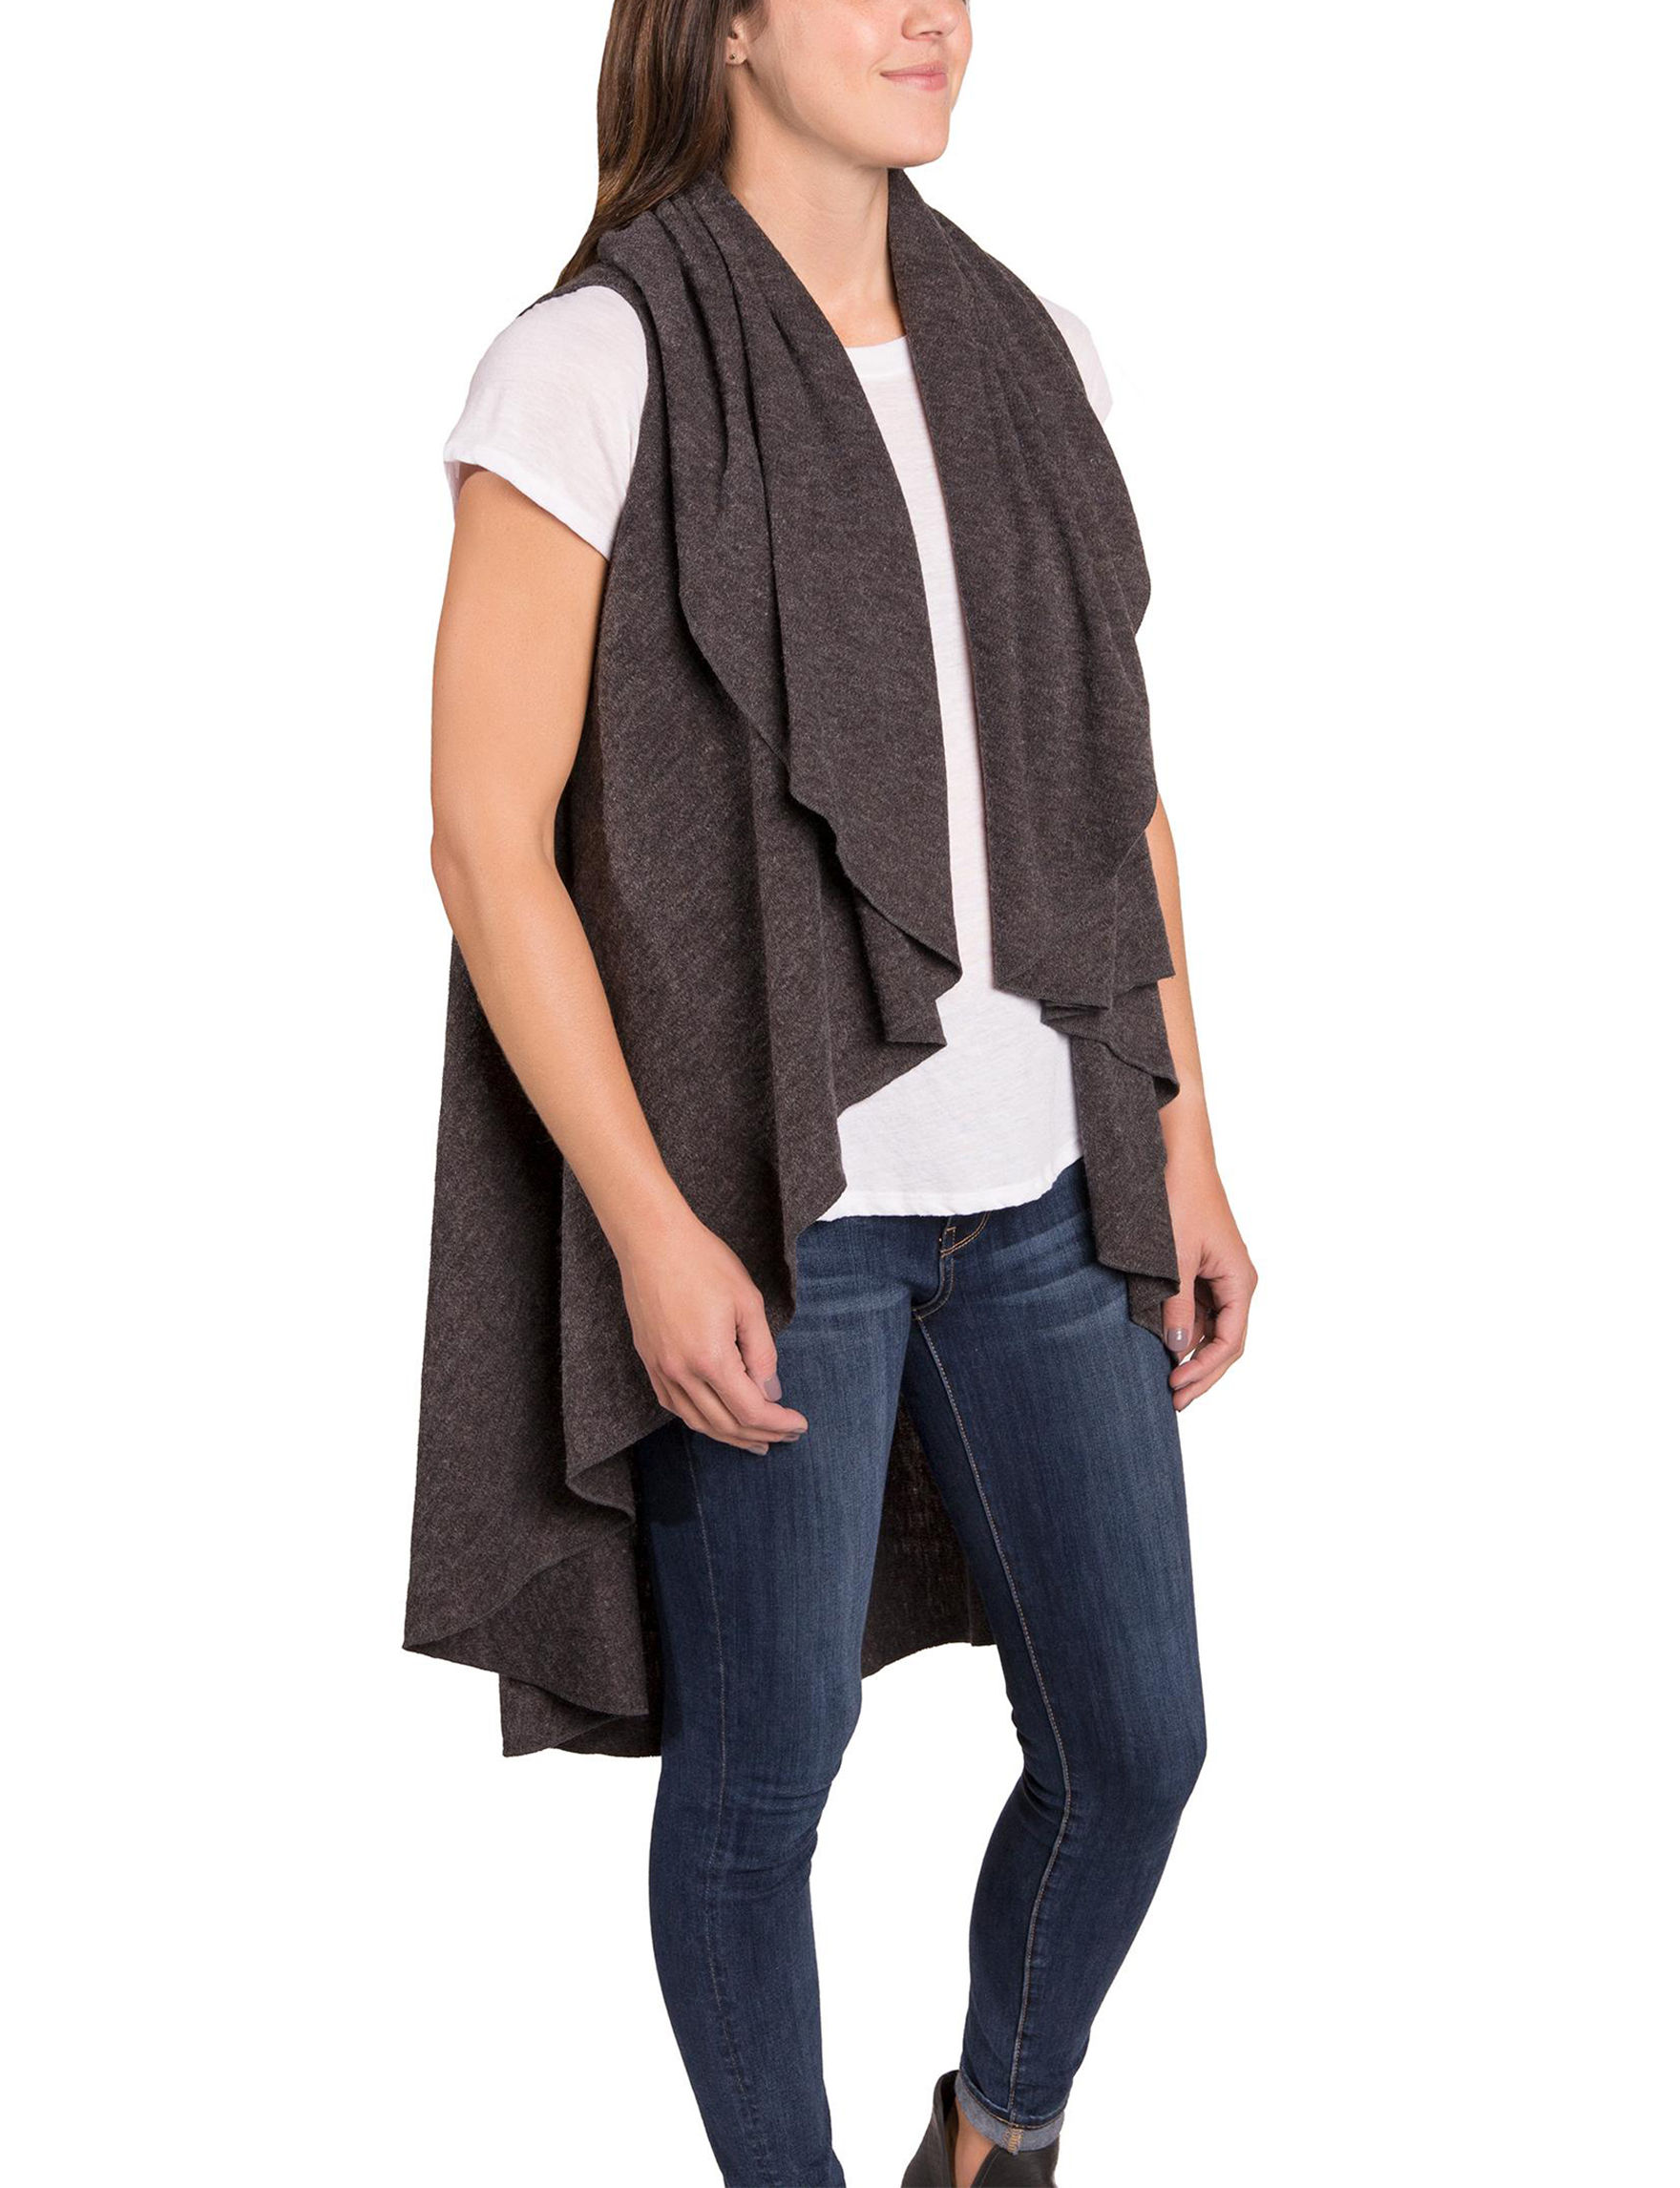 Demdaco Charcoal Cardigans Scarves & Wraps